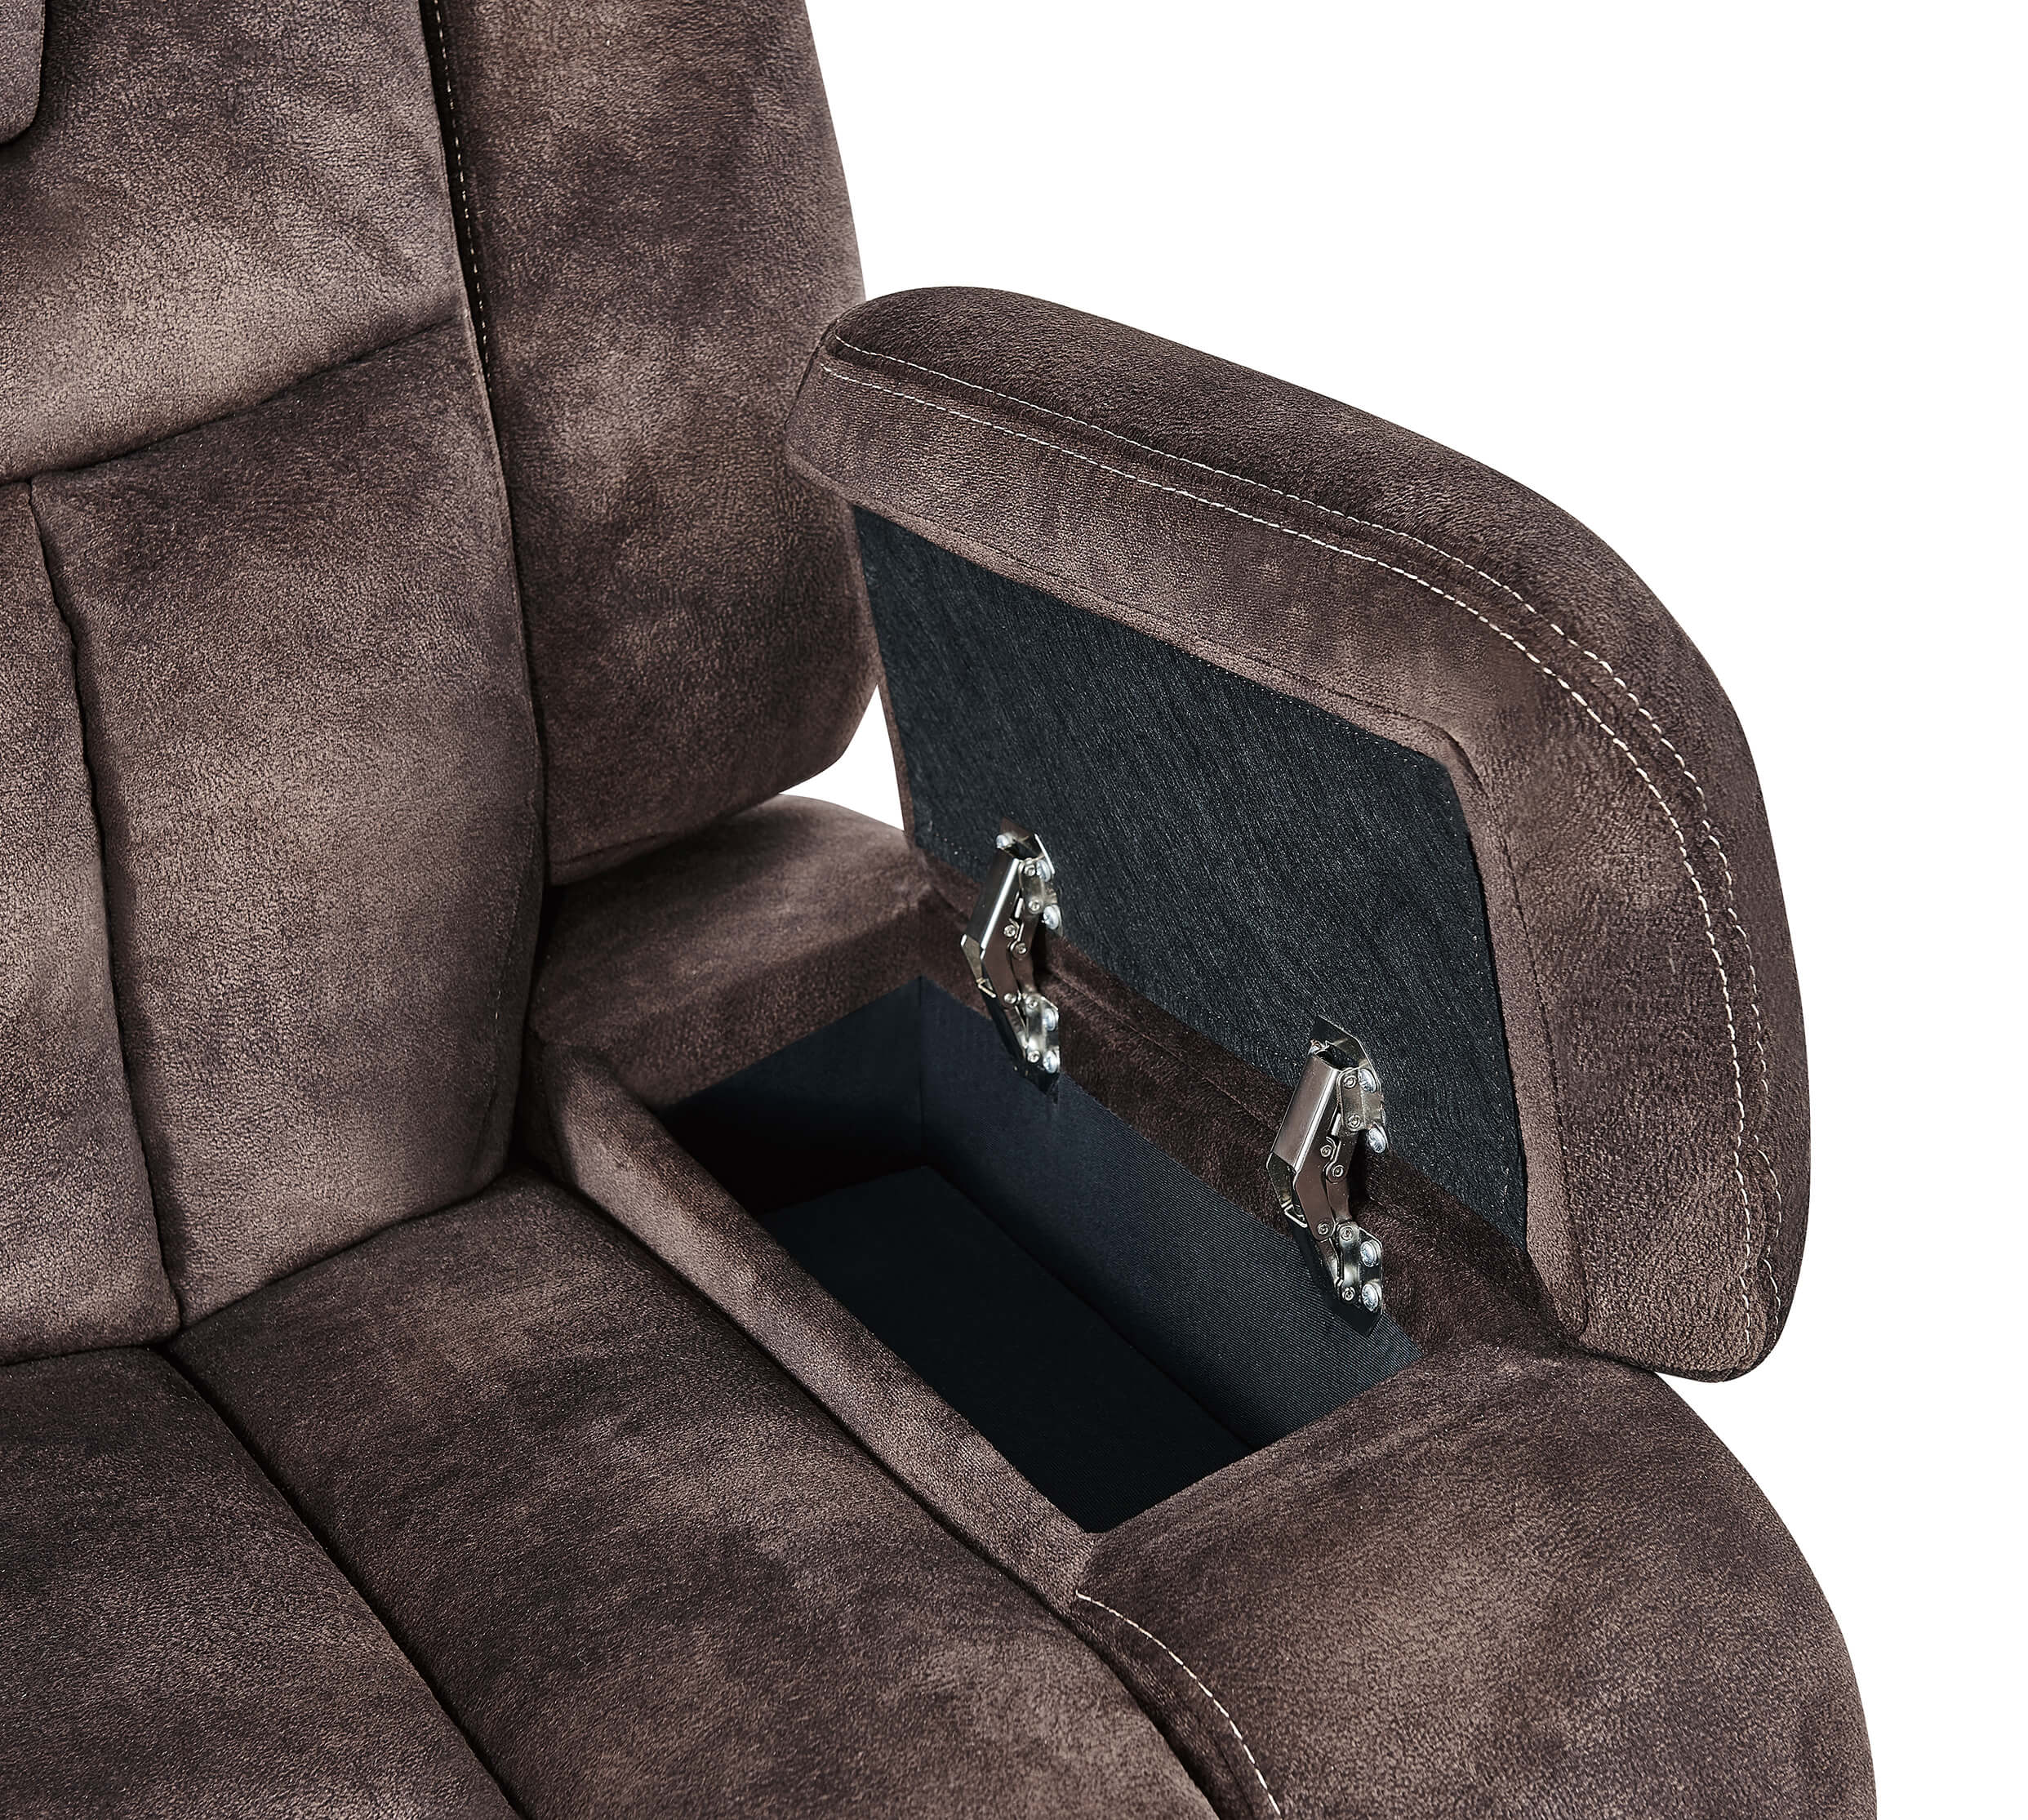 Pleasing U1706 Night Range Chocolate Power Reclining Sofa And Loveseat Set Ocoug Best Dining Table And Chair Ideas Images Ocougorg